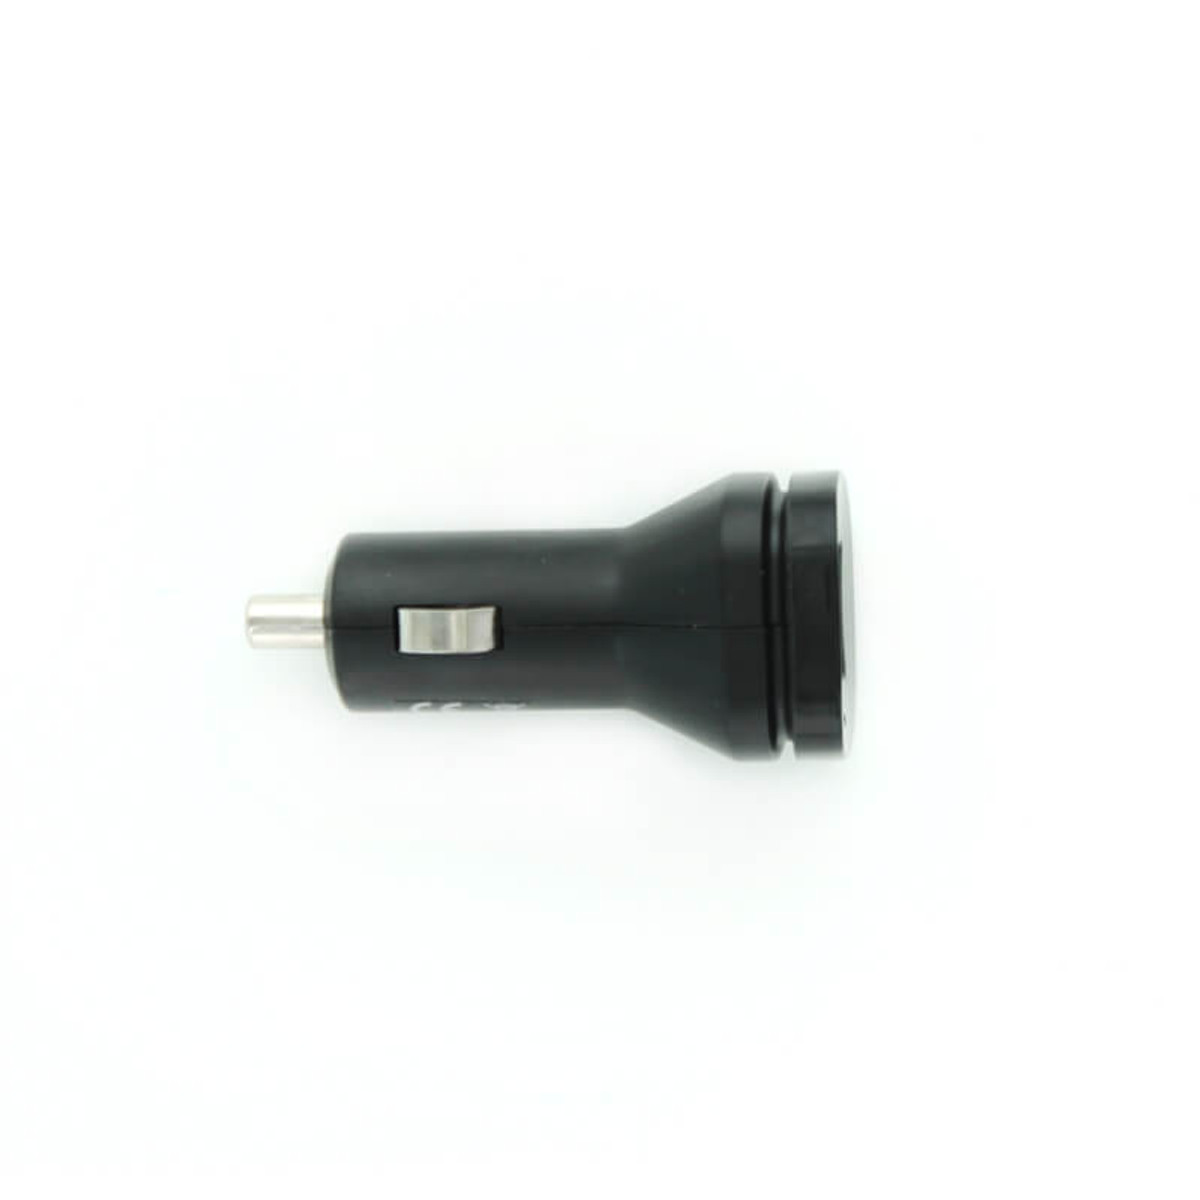 DC/DC Power Supply 5.5V/2A w/ 5ft Cable and USB-A | 859911